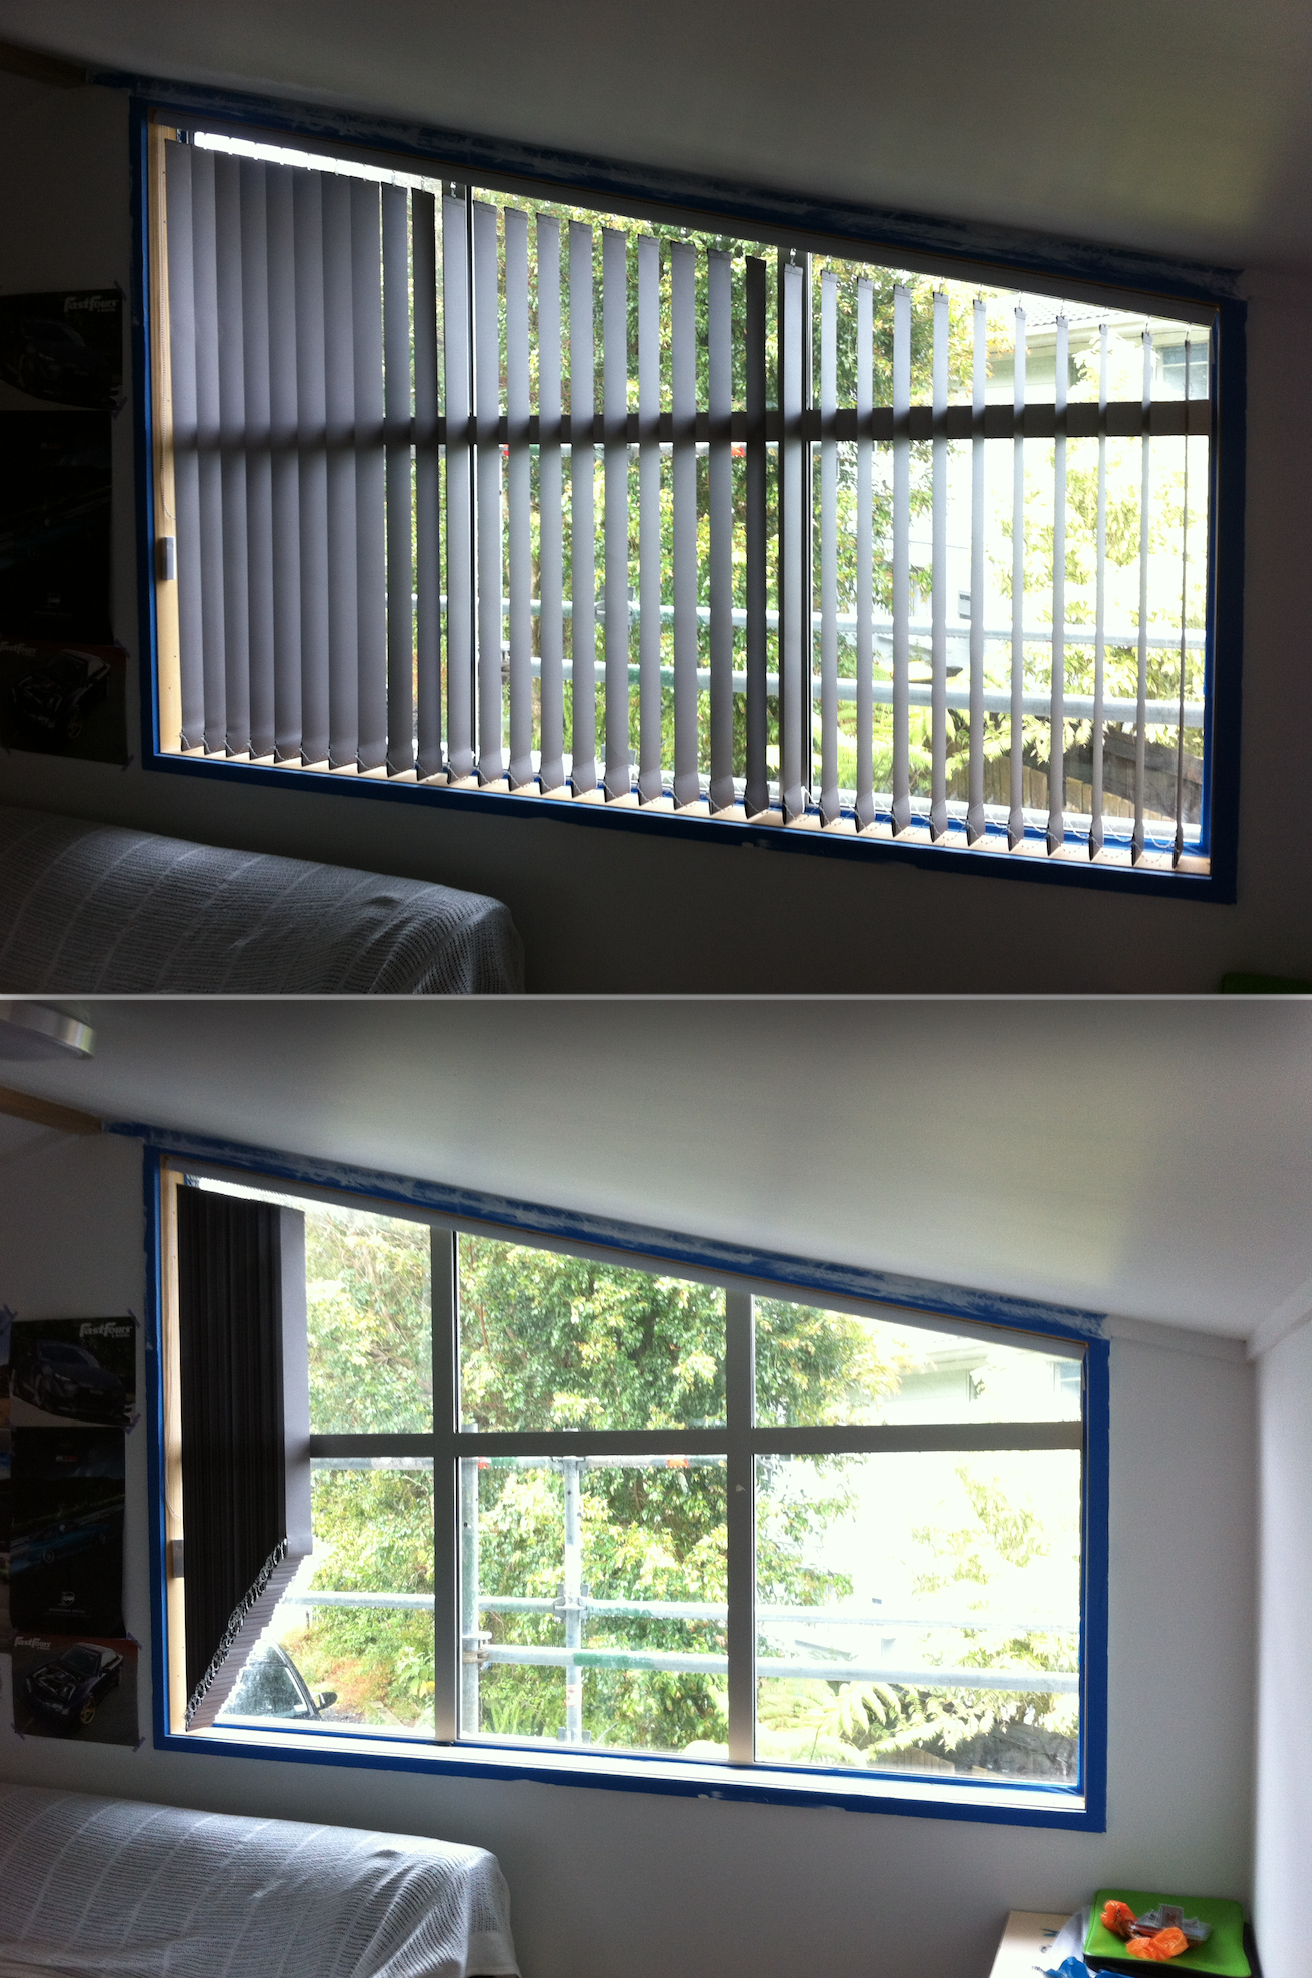 Angled Top Vertical Blinds Are A Very Economical And